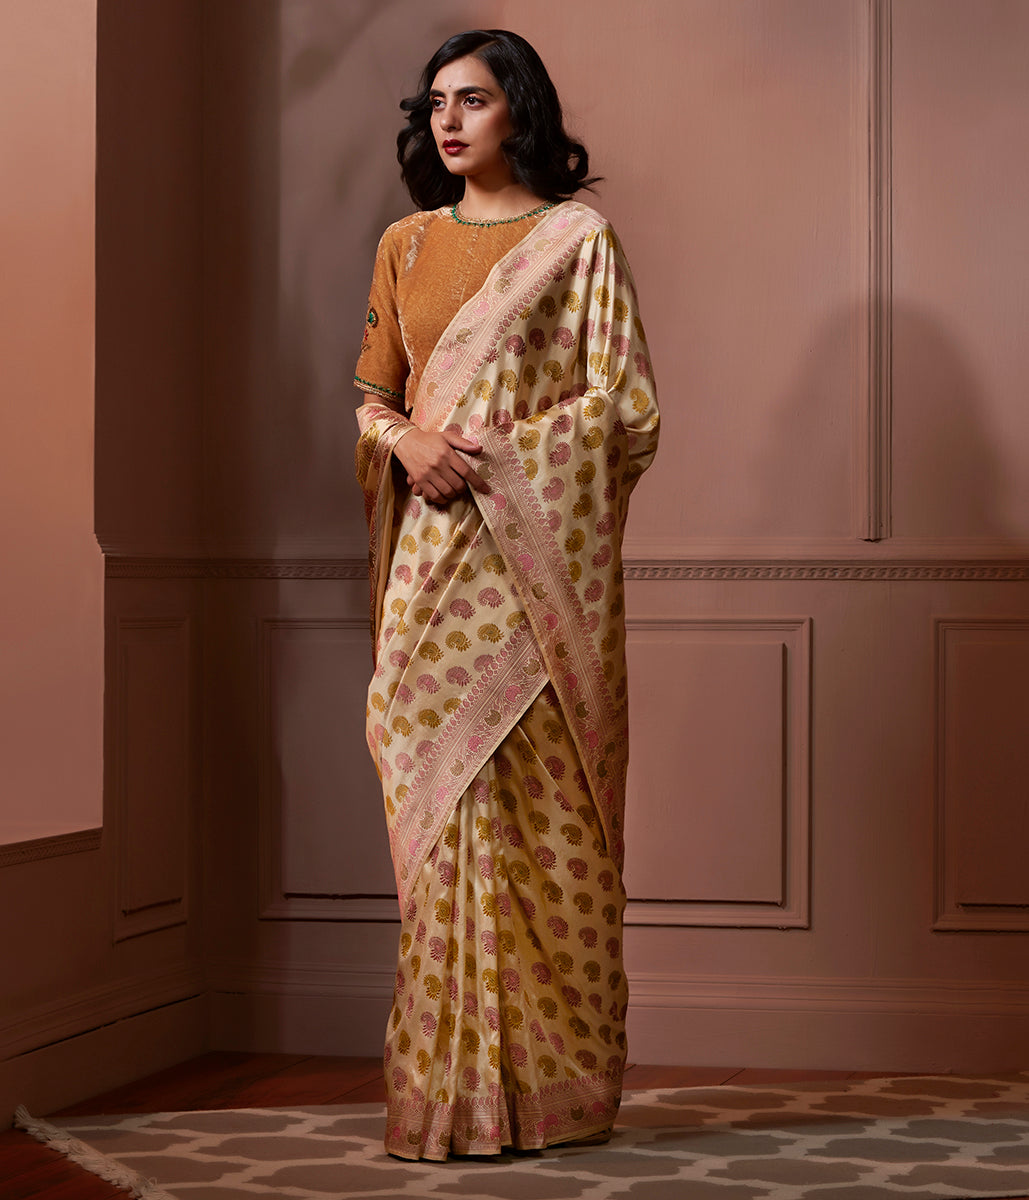 Banaras Baluchari saree in Natural Tusser color with pastel meenakari